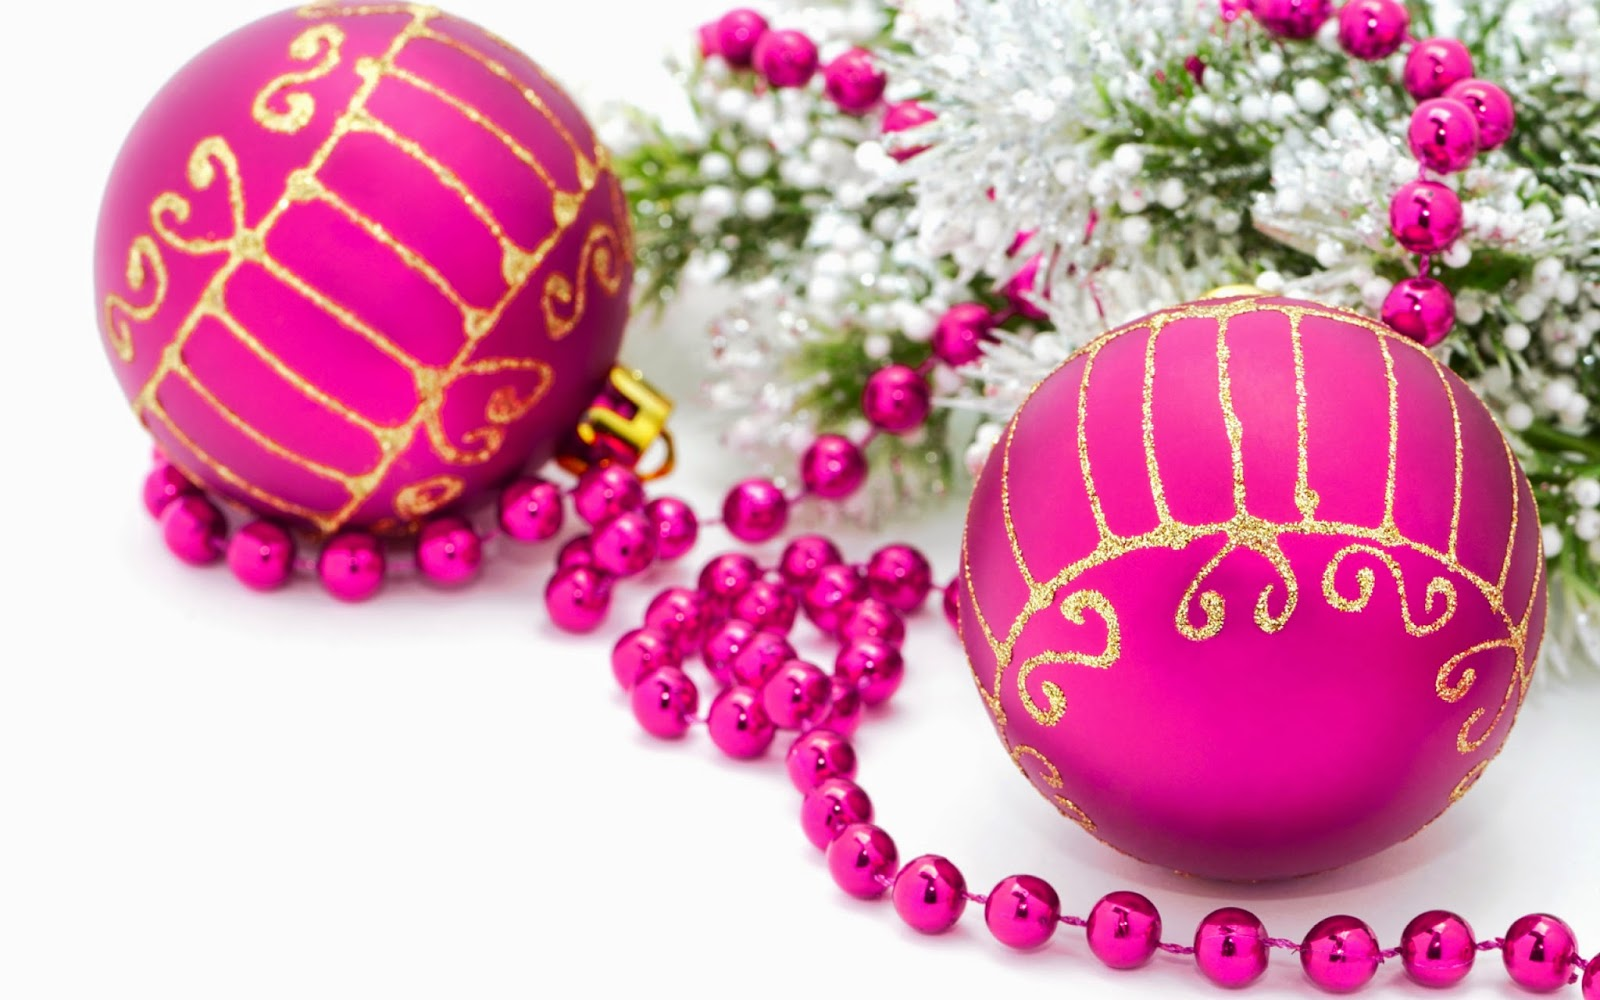 pink-color-christmas-baubles-with-beautiful-design-white-BG-HD-wallpaper.jpg